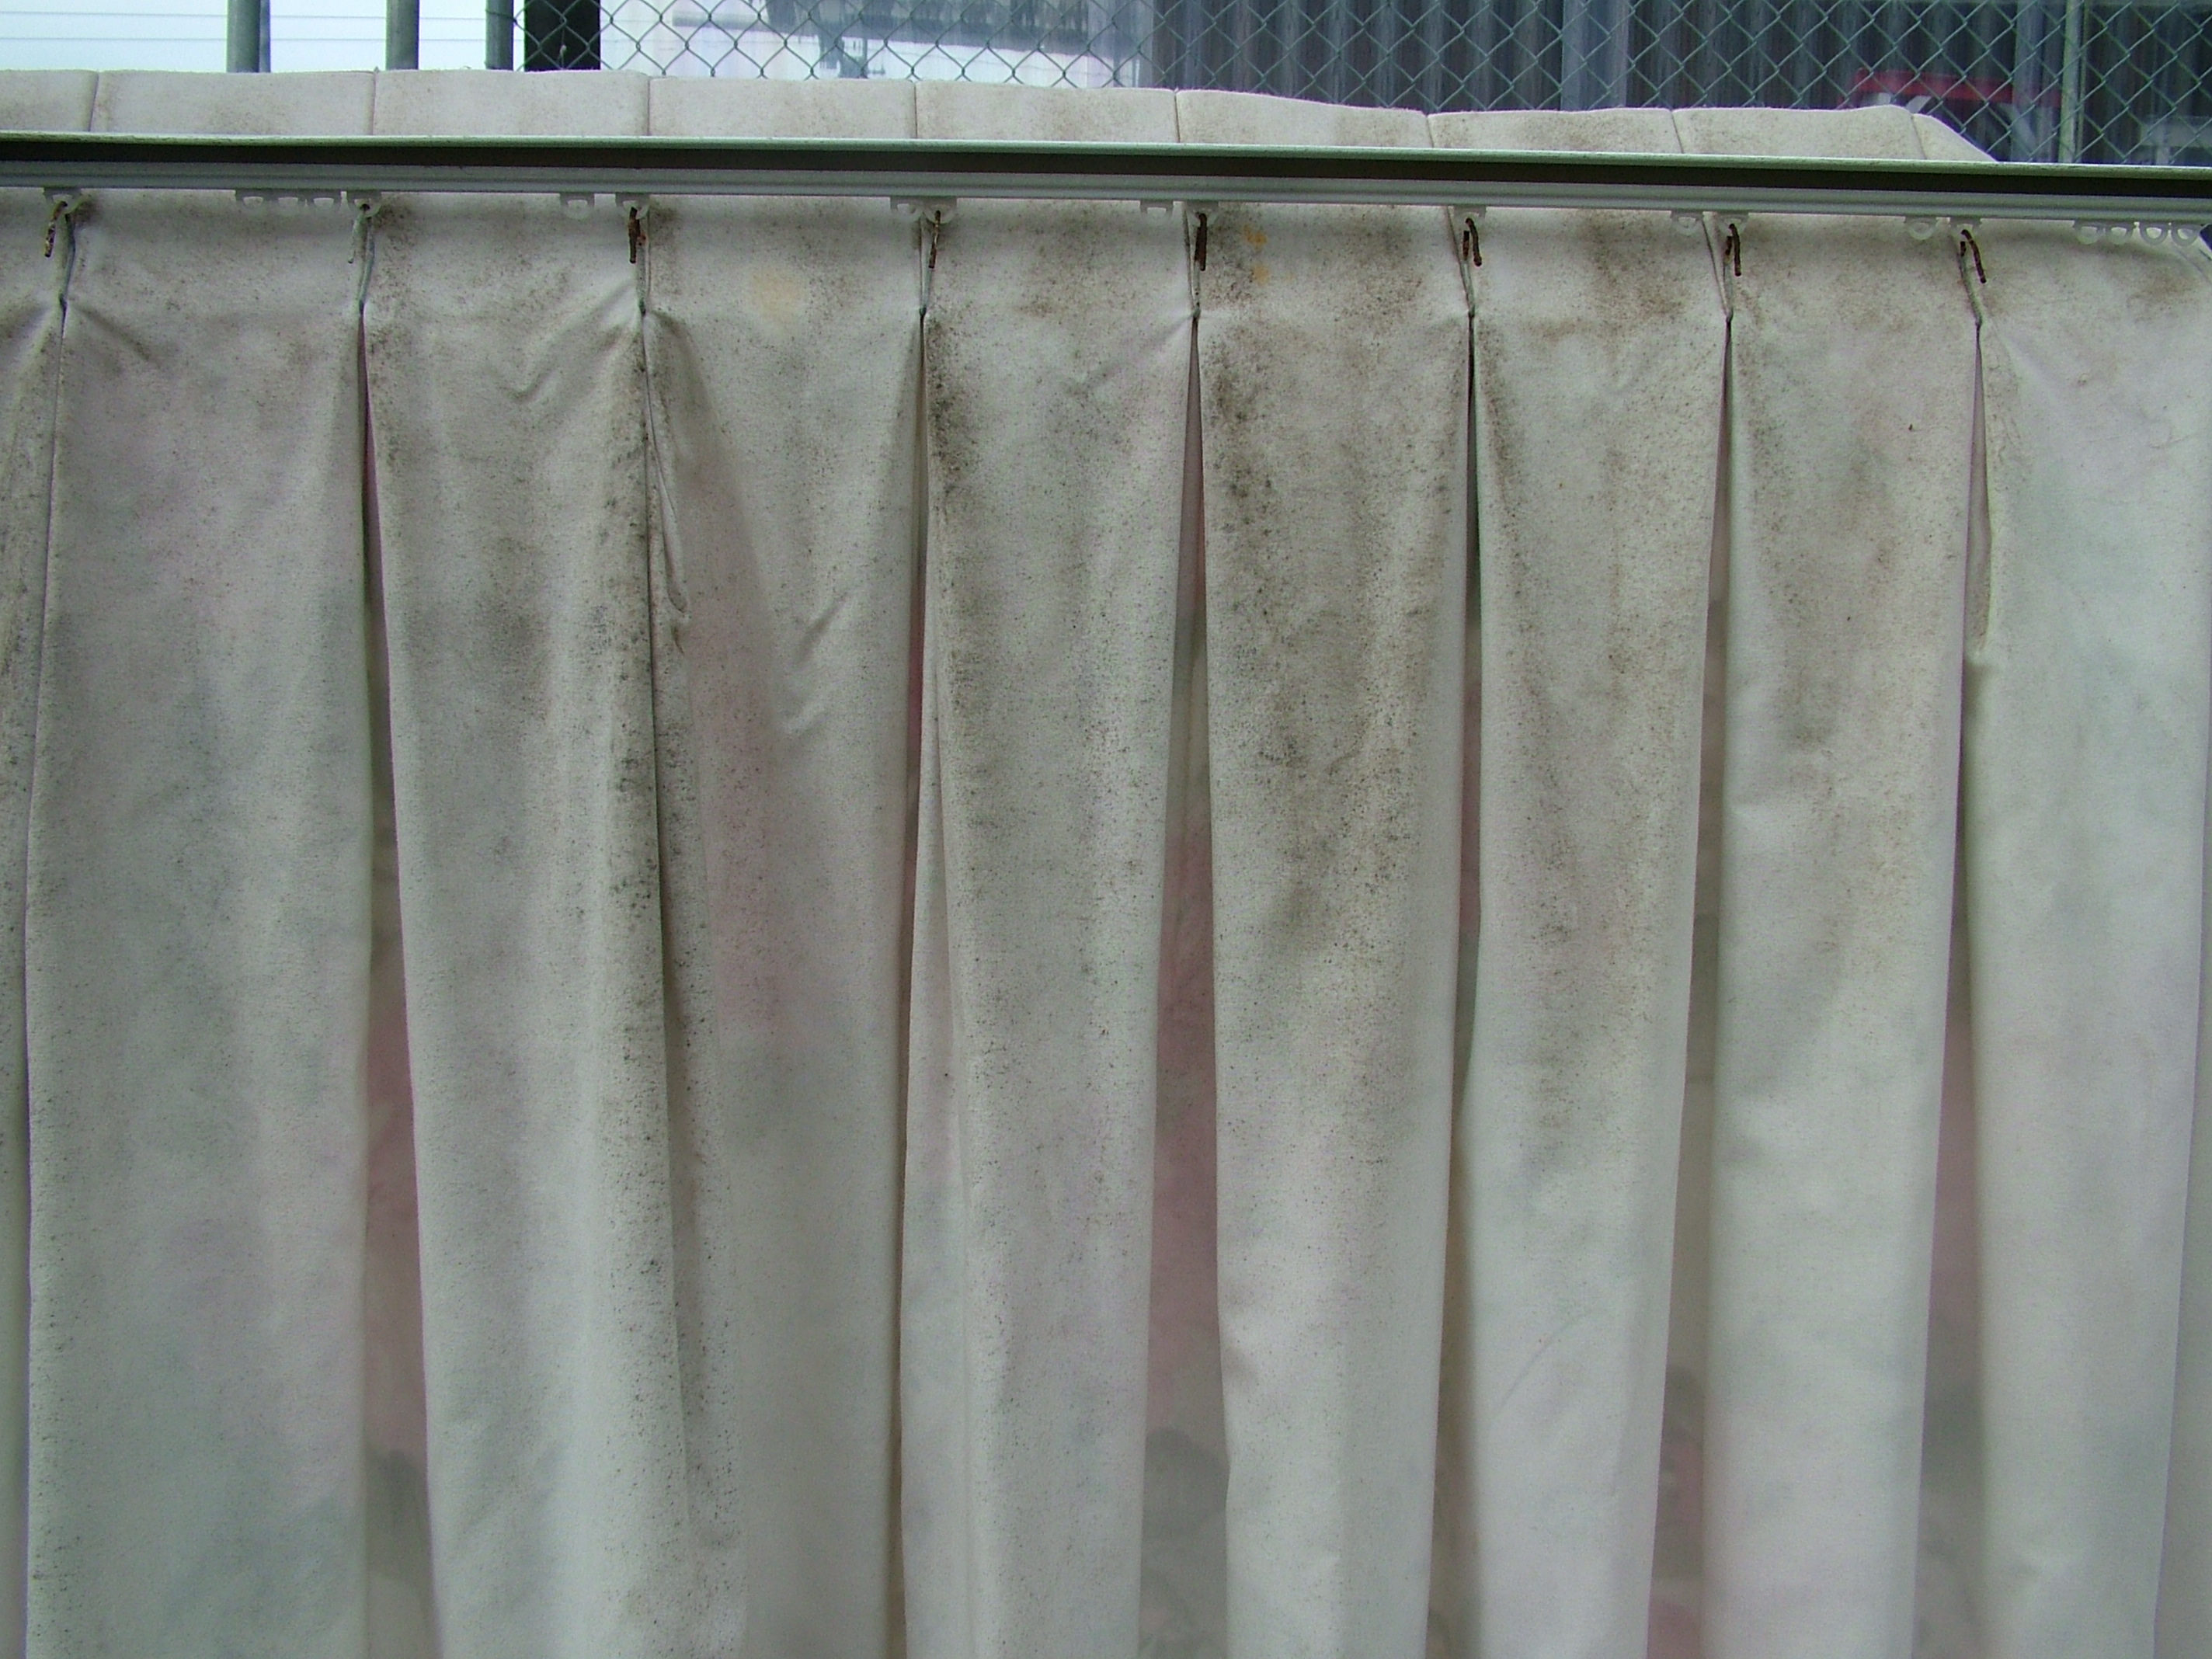 Cleaning Mouldy Curtains And Drapes Can They Be Cleaned